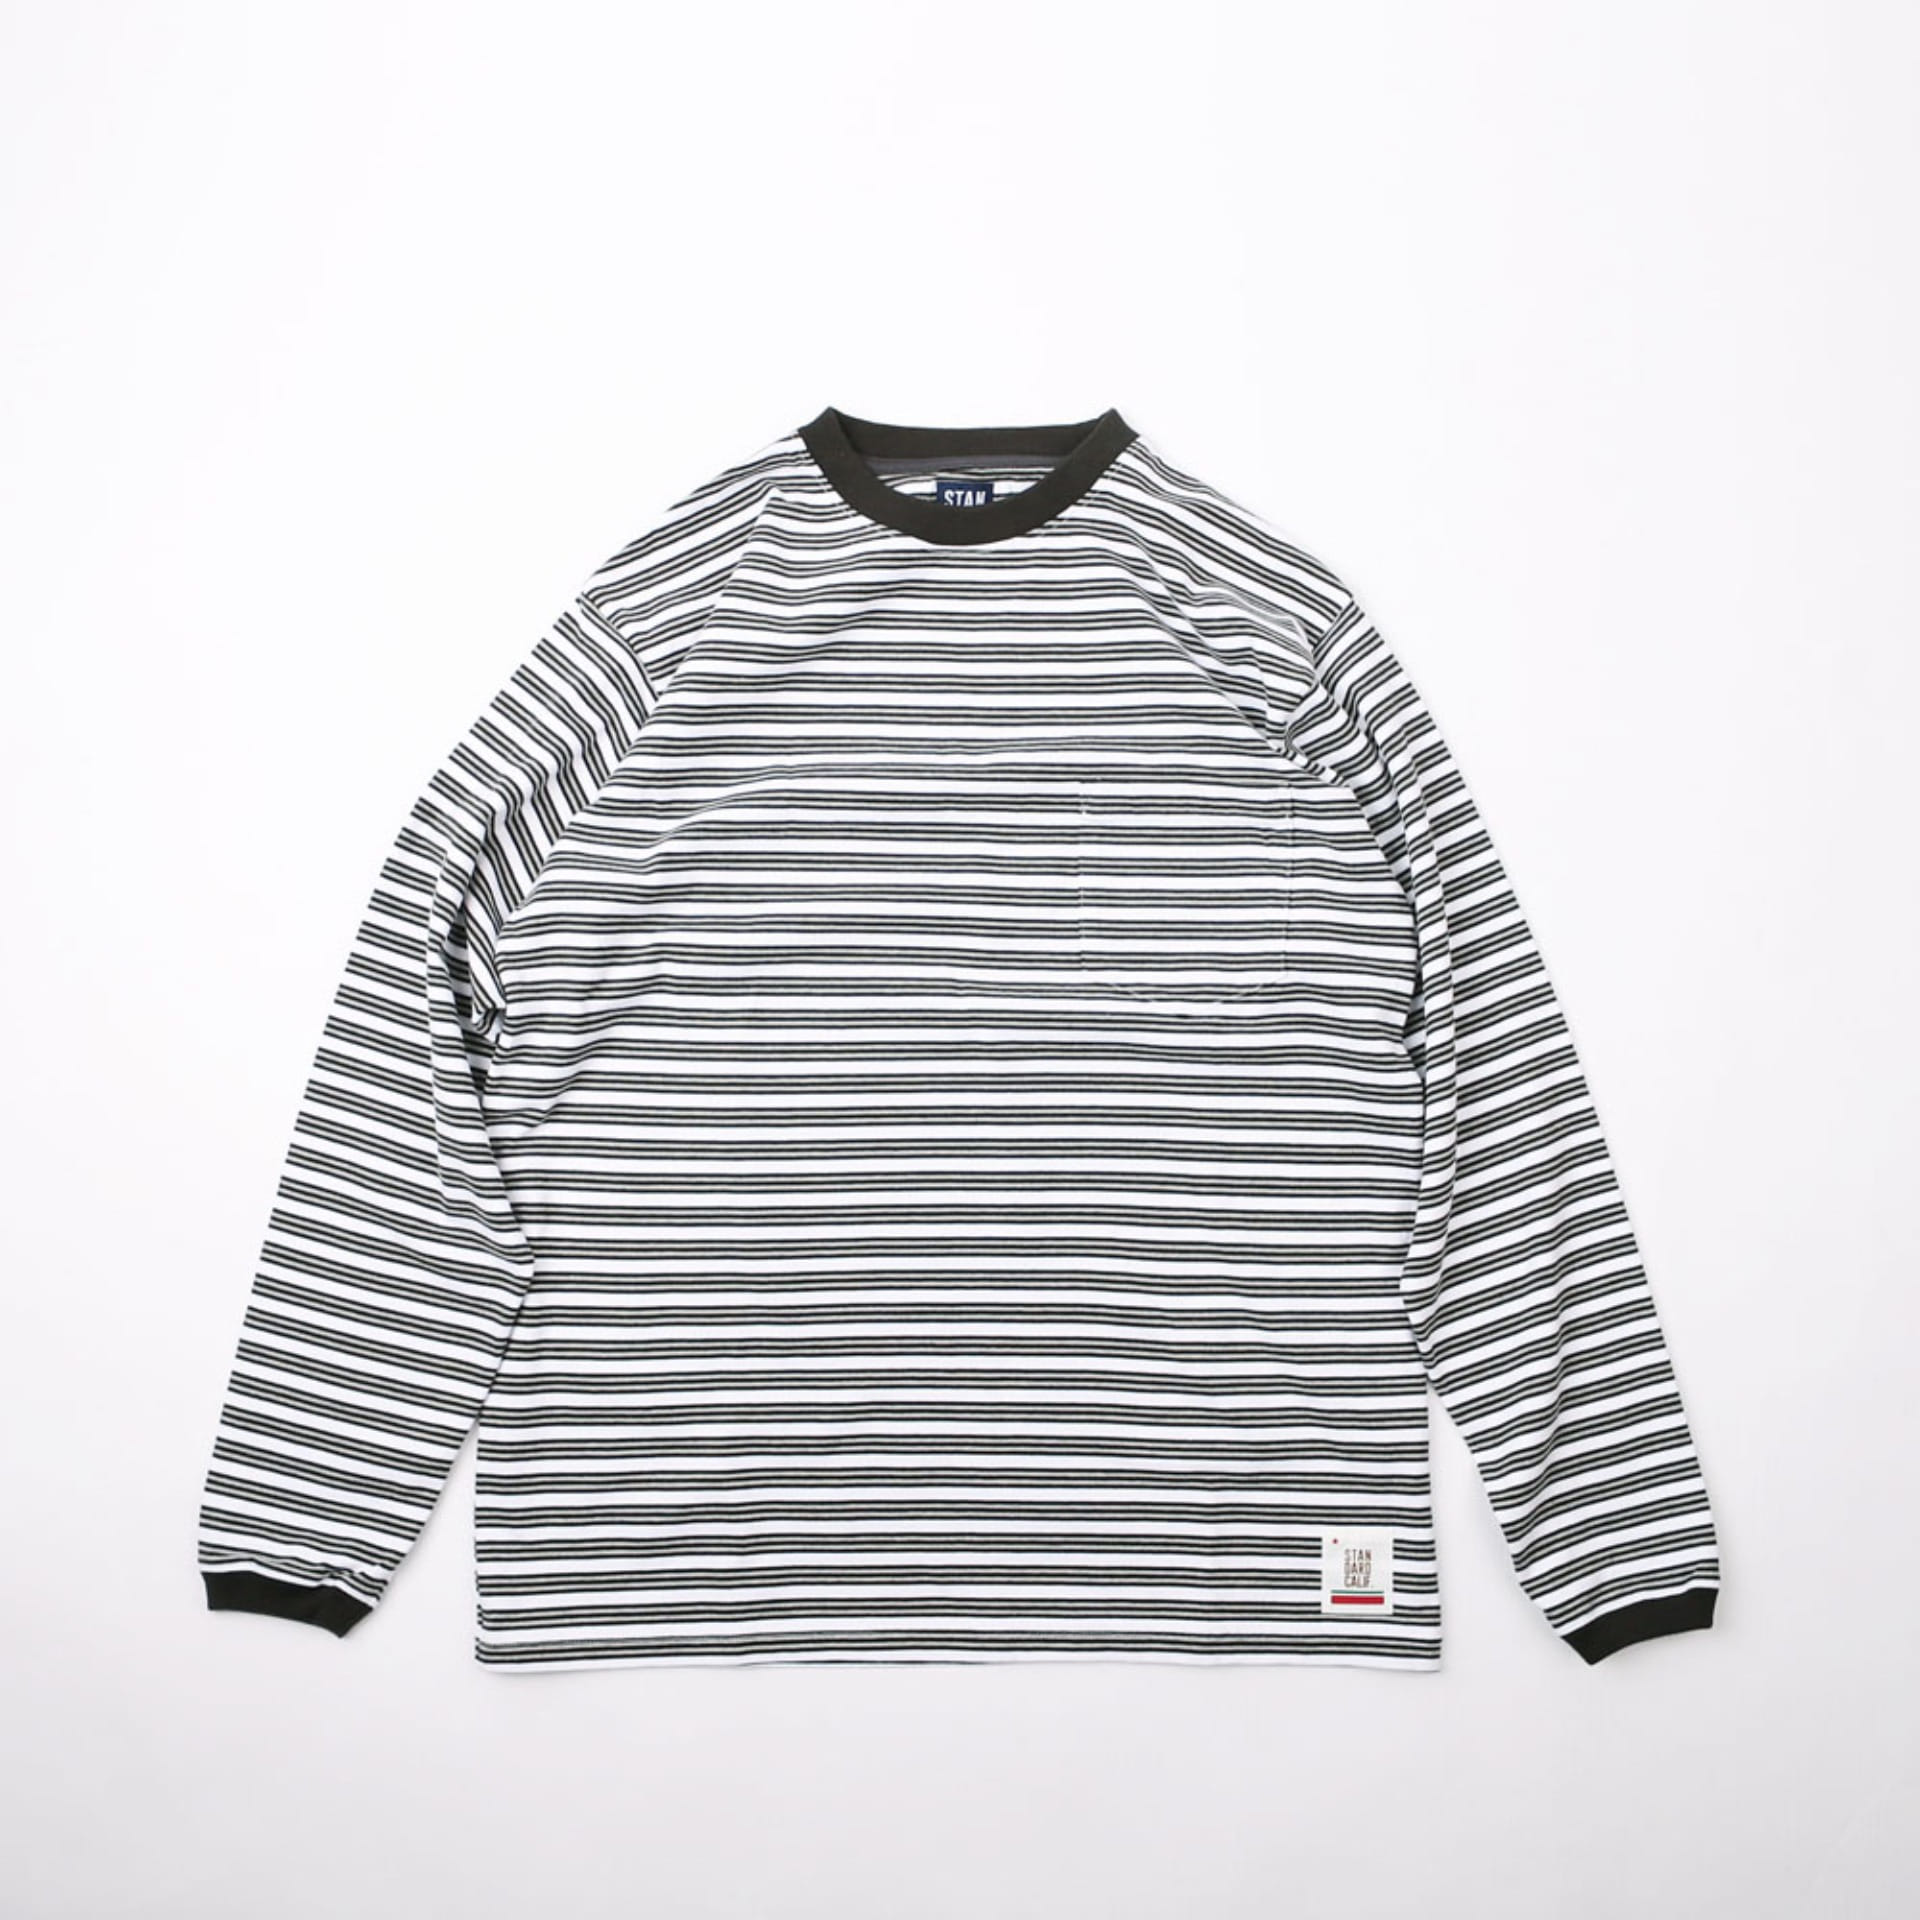 SD Border Long Sleeve T Shirt (BLK/GRY/WHT)